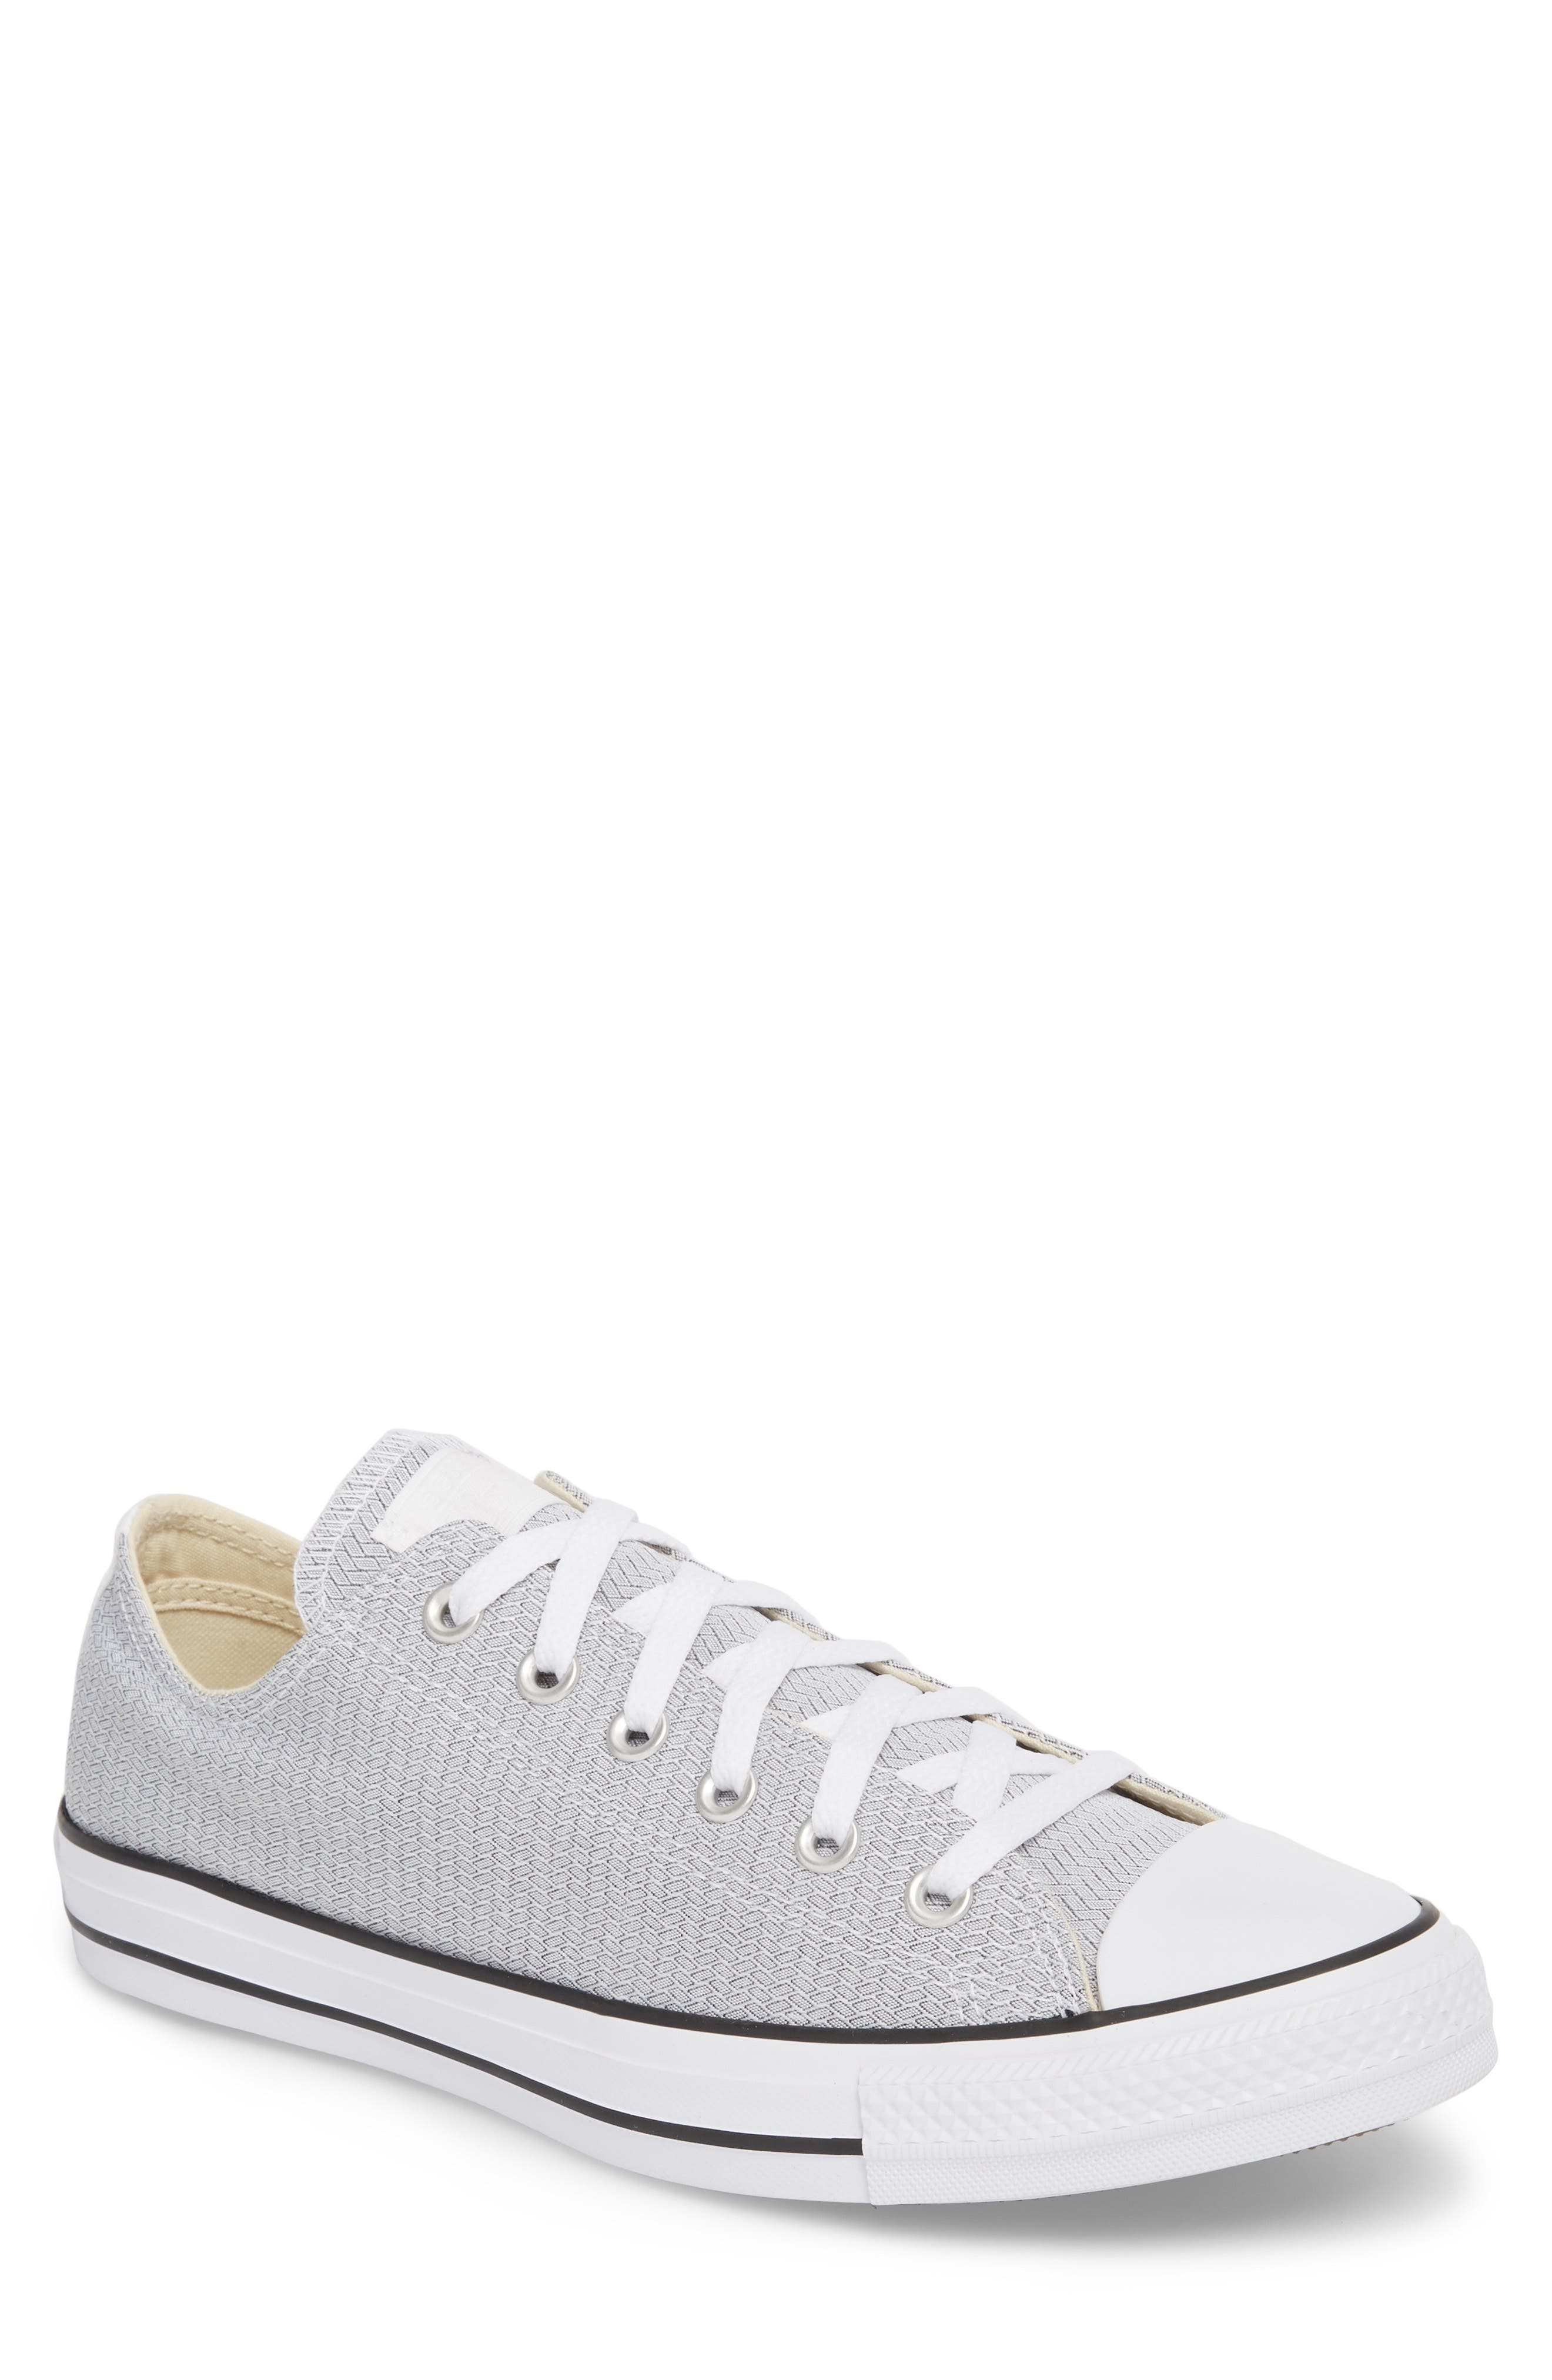 All Star<sup>®</sup> Ripstop Low Top Sneaker,                             Main thumbnail 1, color,